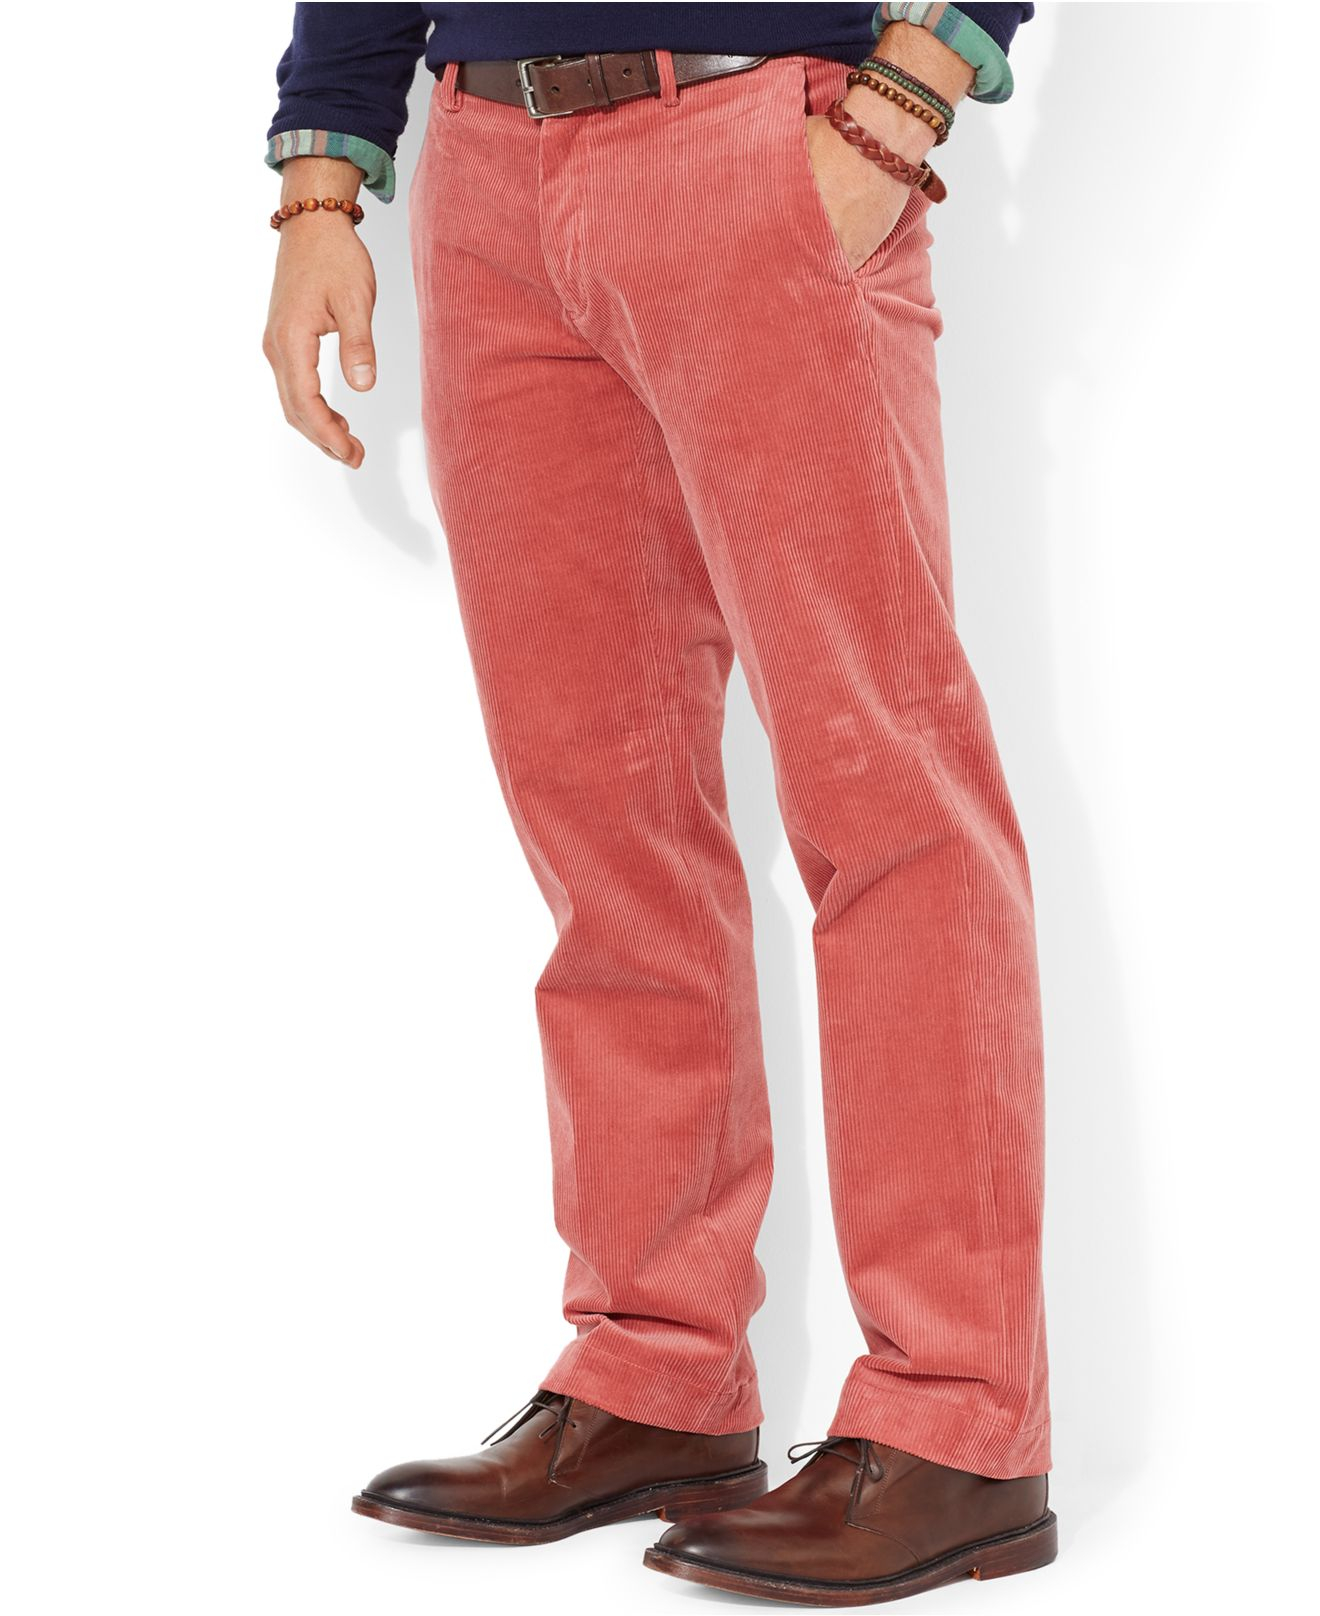 Polo ralph lauren Classic-Fit Newport Corduroy Pants in Pink for ...